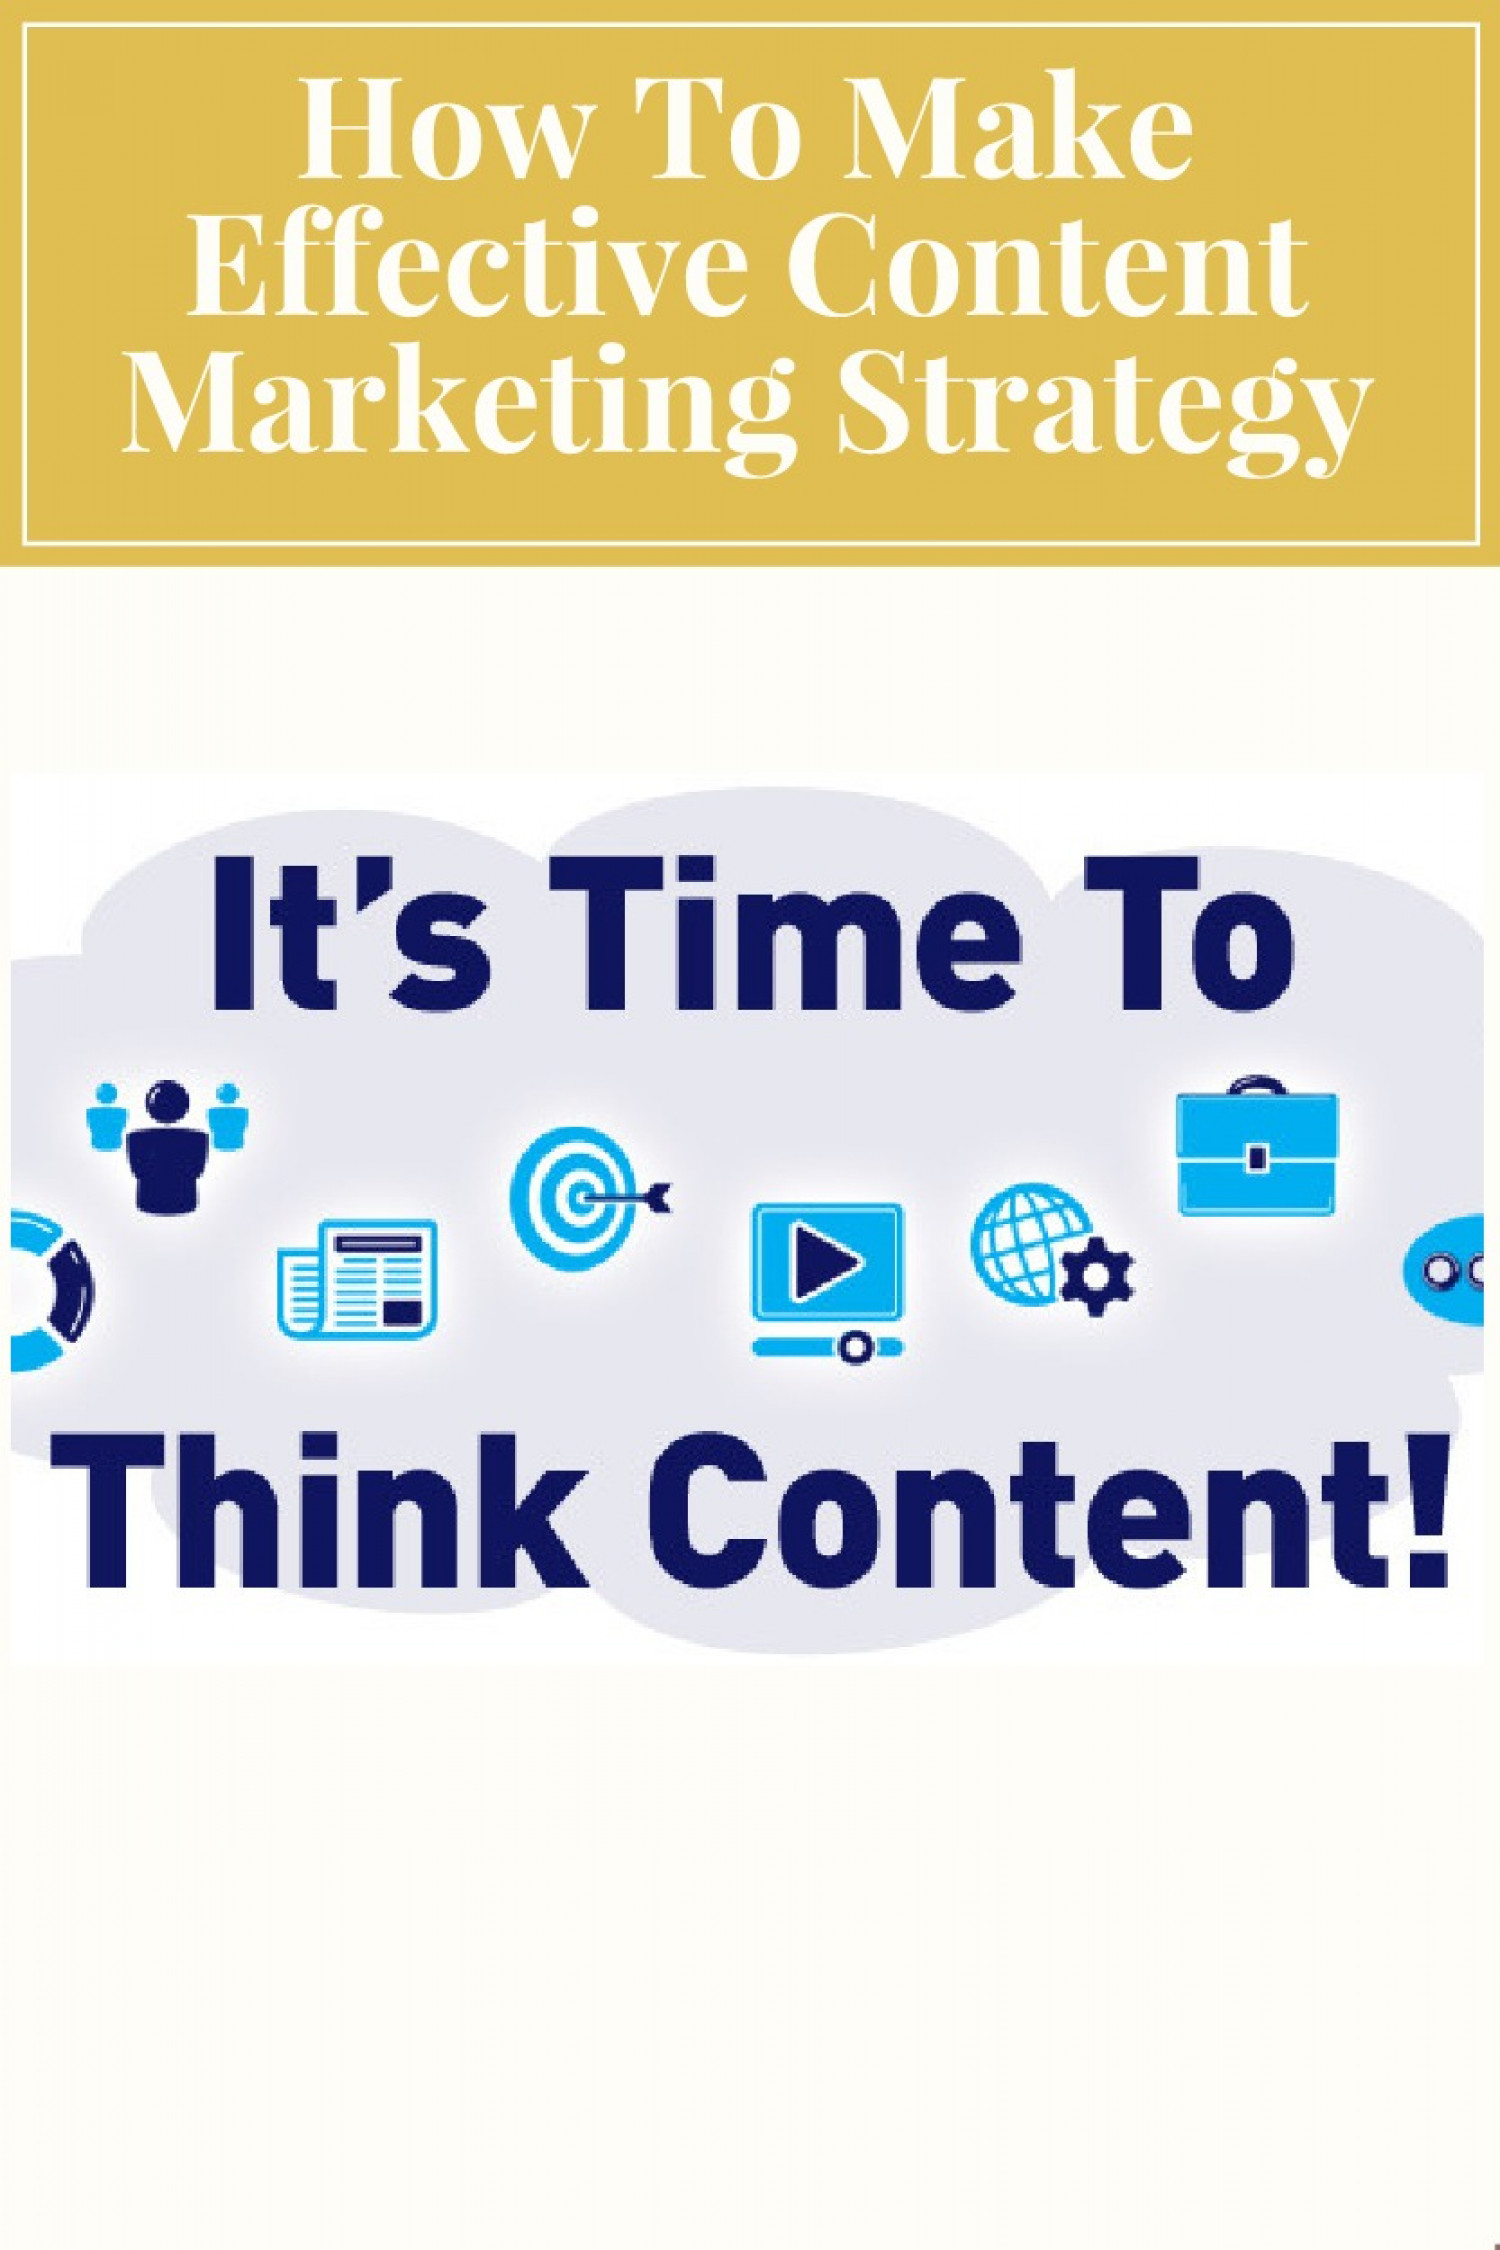 How To Make Effective Content Marketing Strategy? Infographic